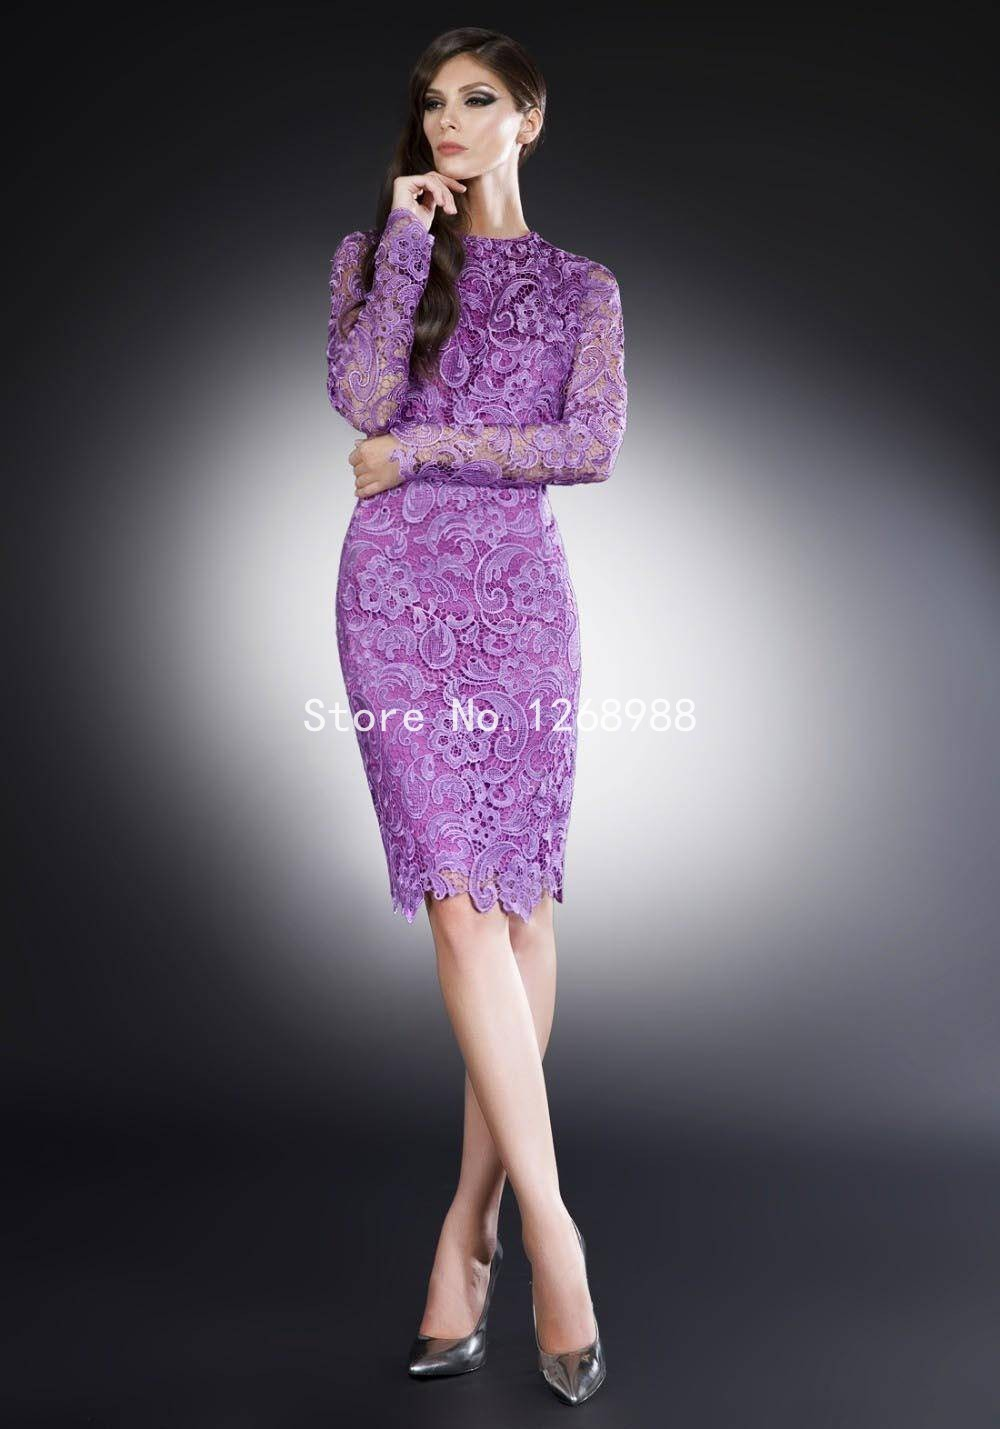 Aliexpress.com : Buy Purple Long Sleeve Backless Cocktail Dresses ...